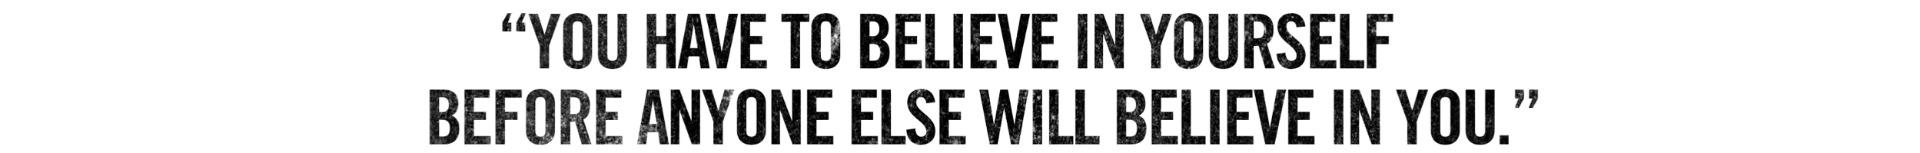 You have to believe in yourself before anyone else will believe in you.